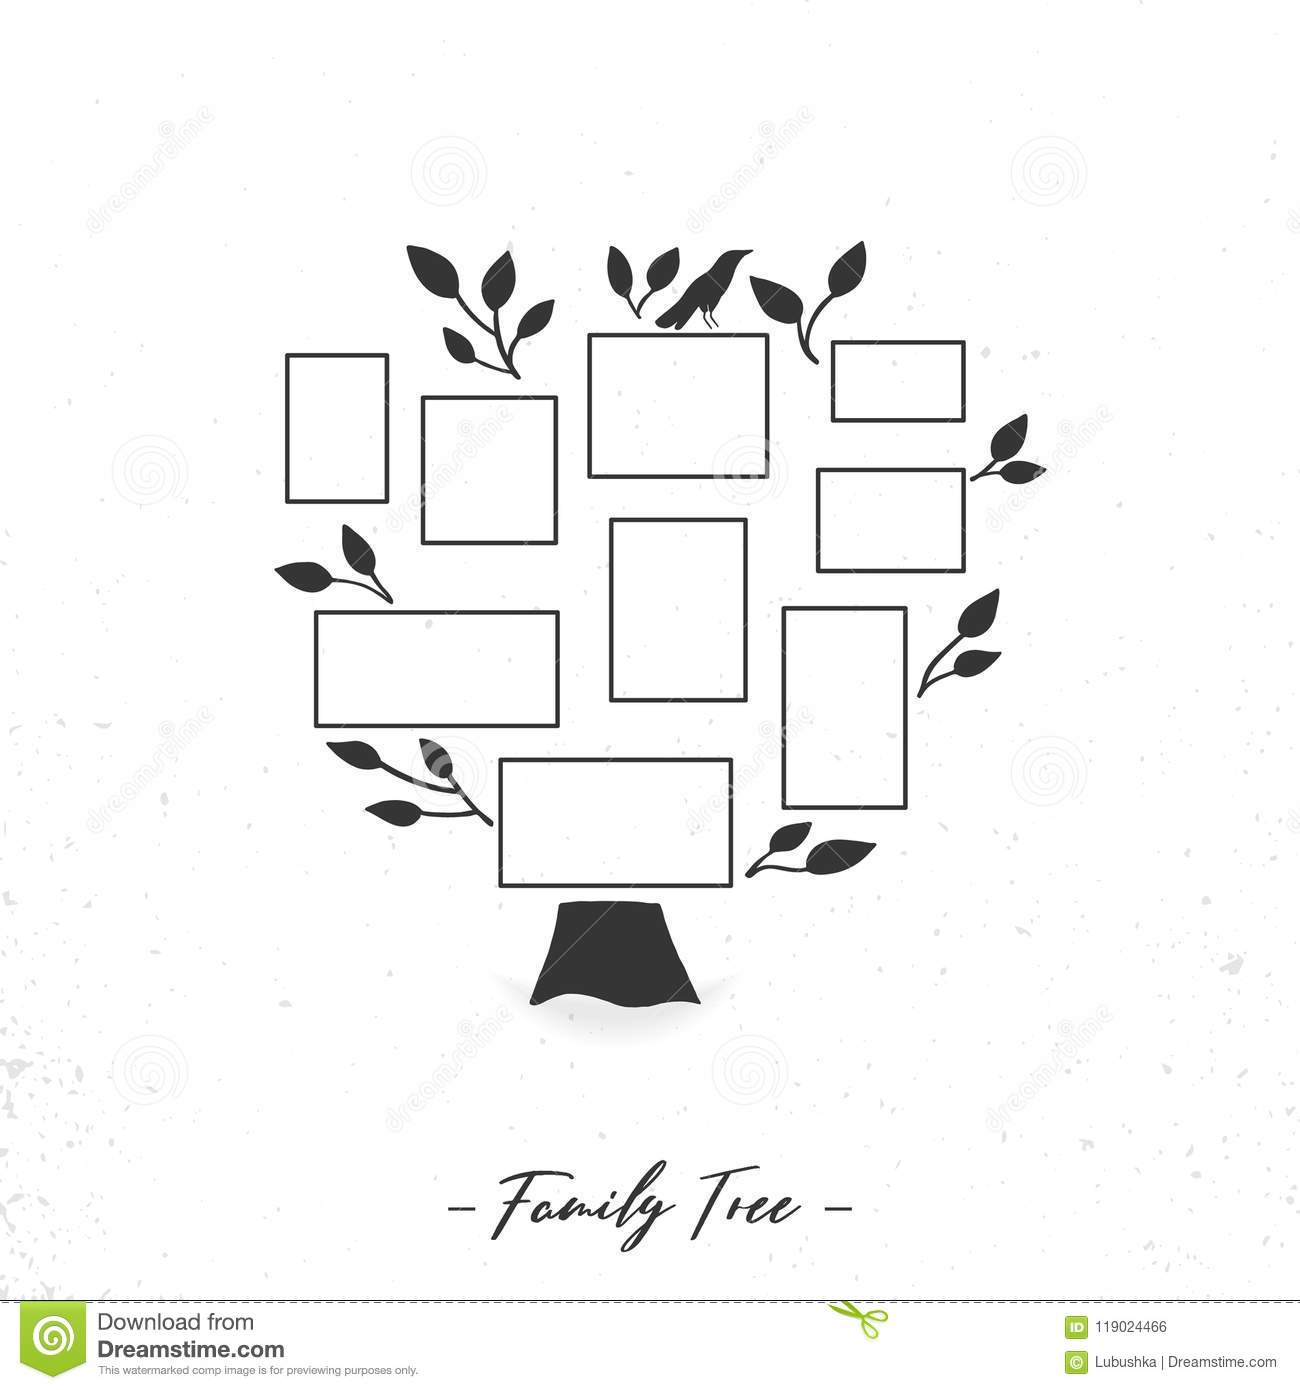 Family Tree With Photo Frames Stock Vector Illustration Of Collage